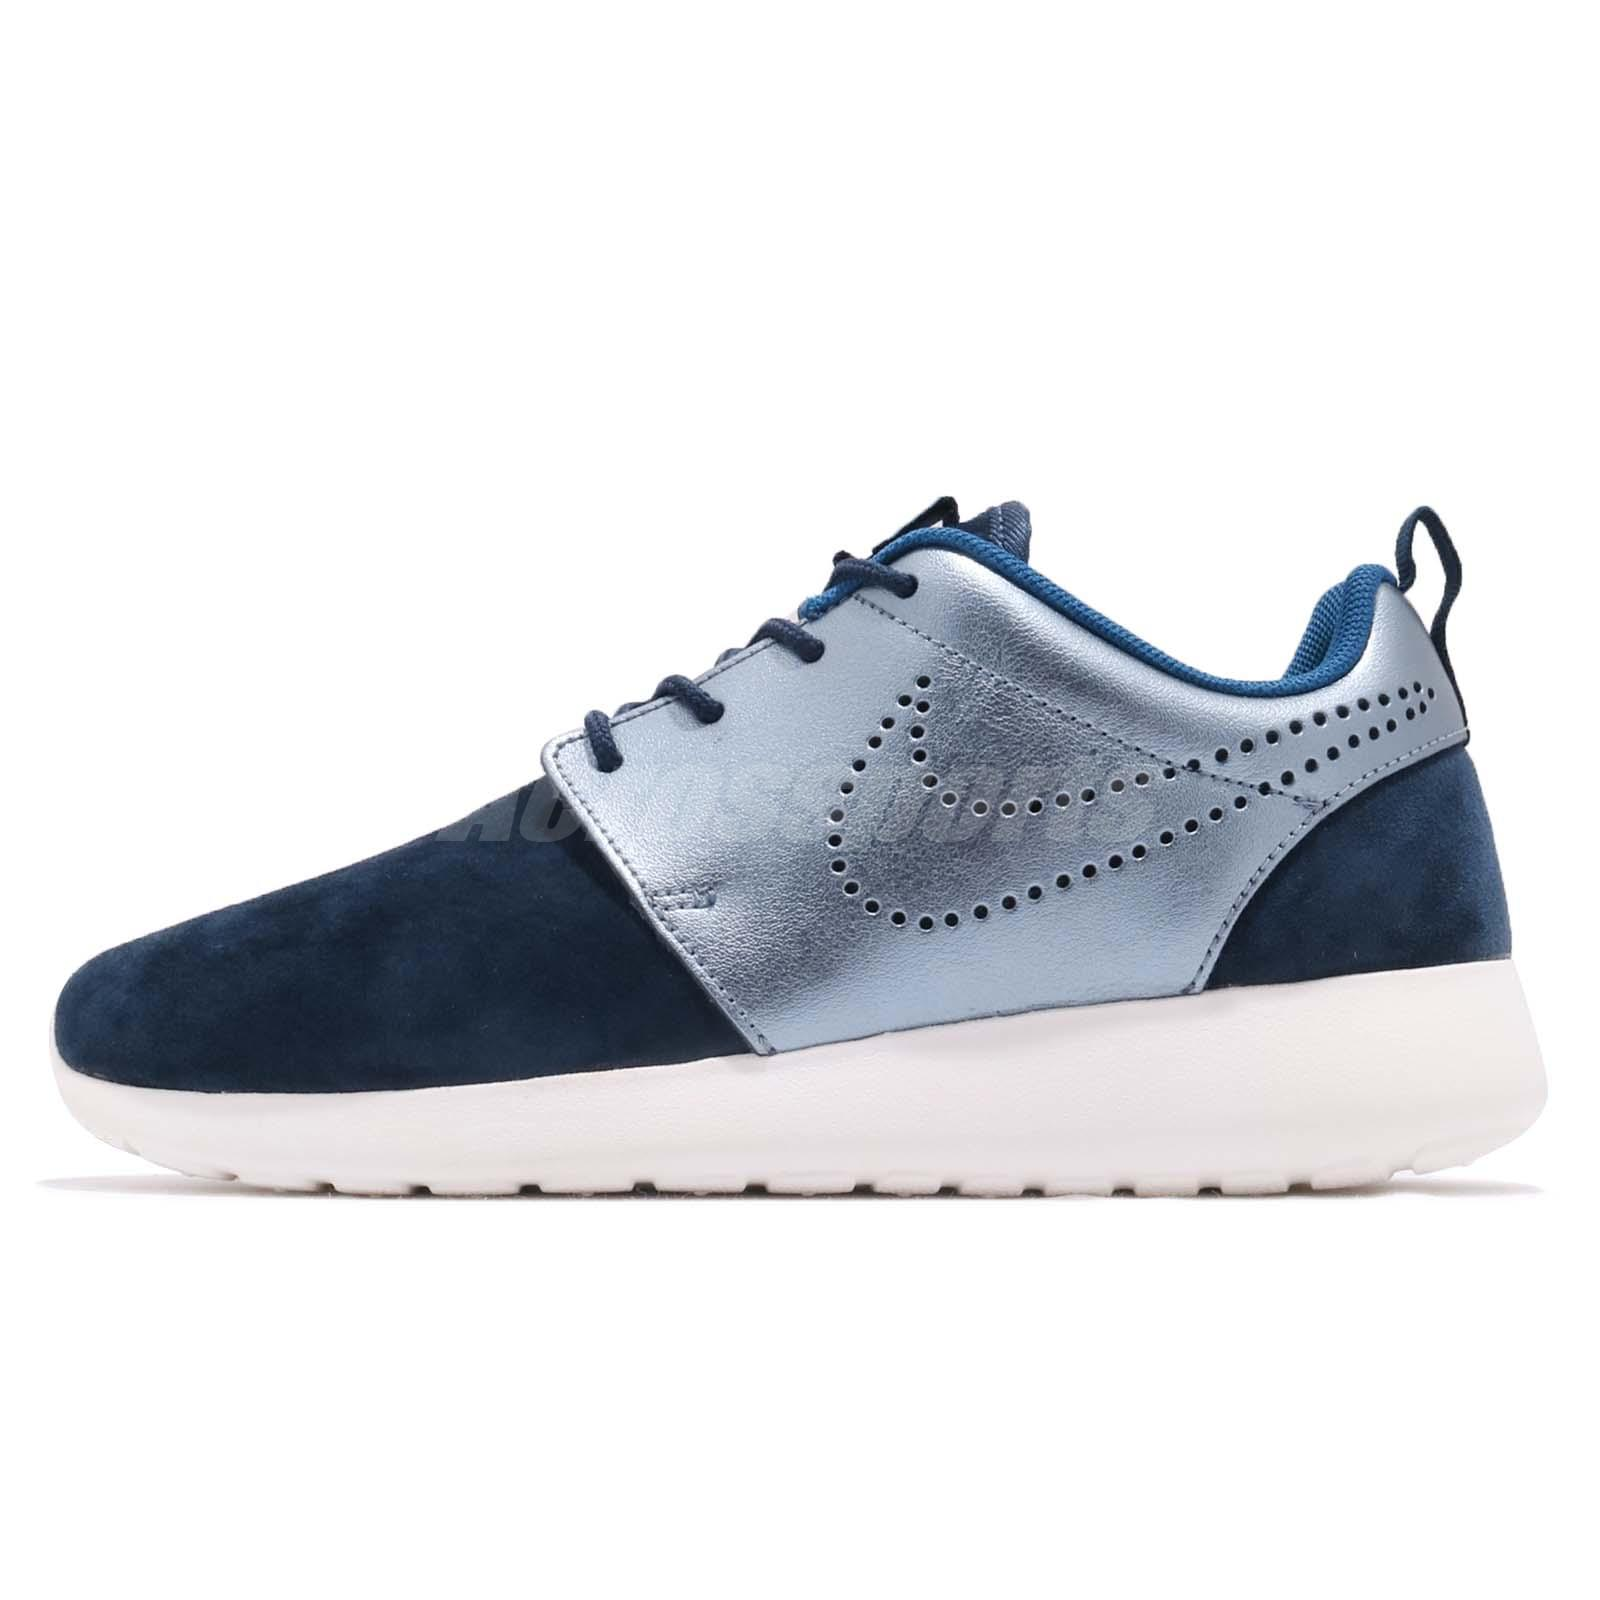 ... Wmns Nike Roshe One PRM Suede Rosherun Navy Womens Running Shoes  820228-400 4da124ea001